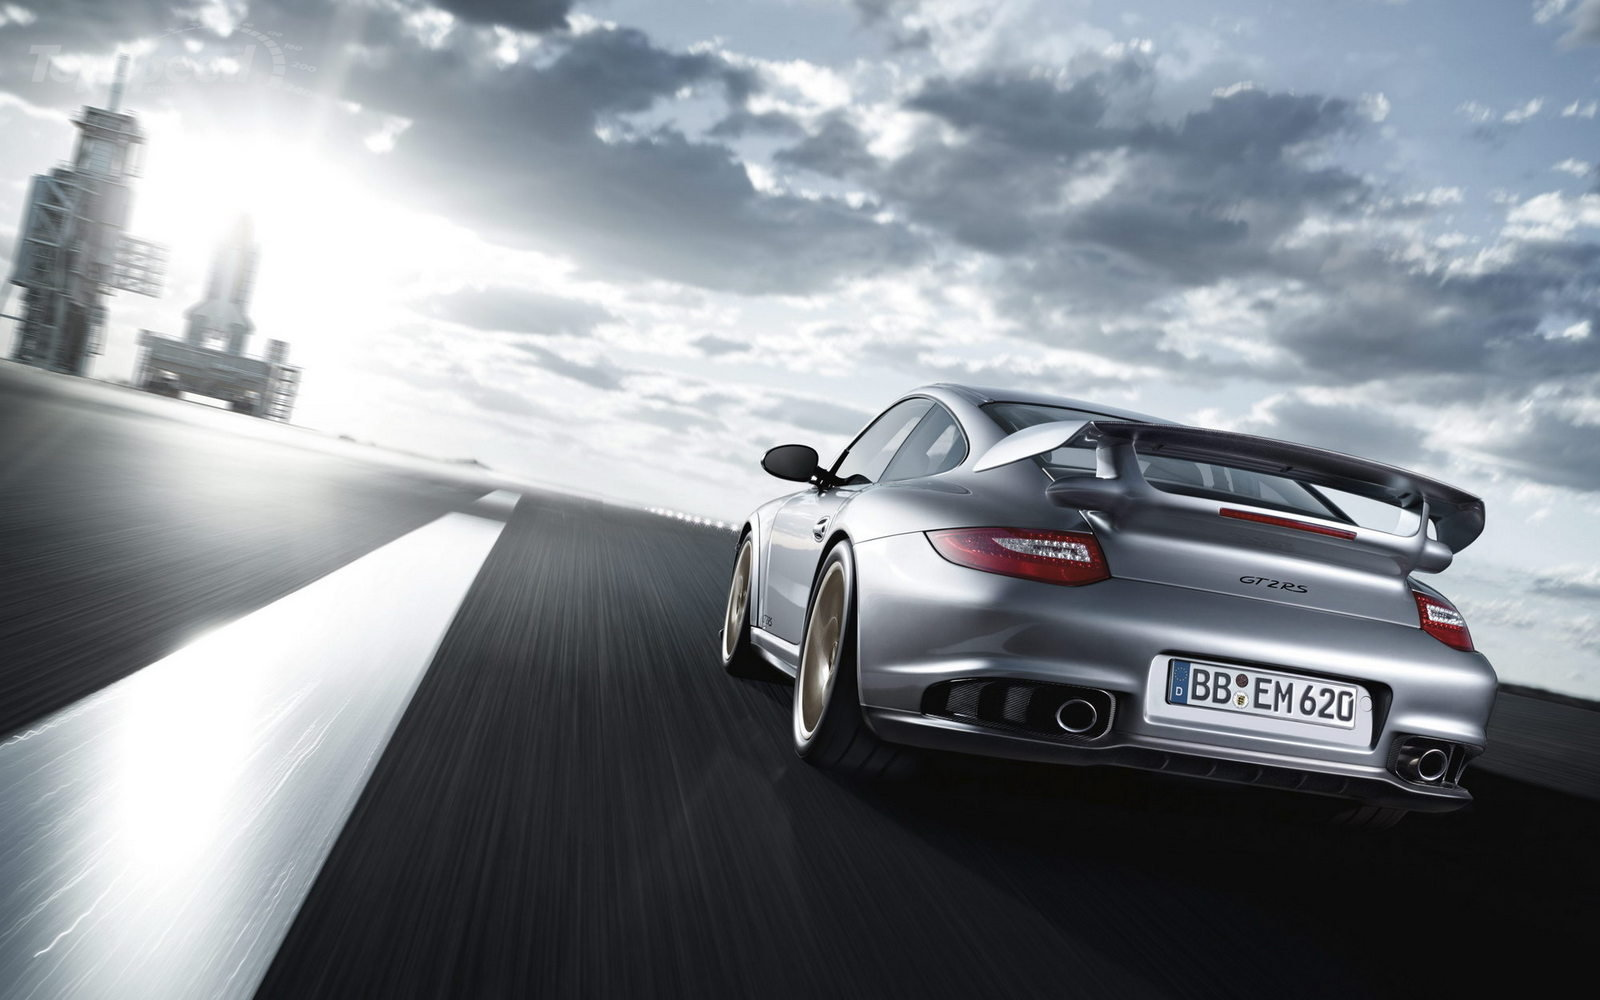 Porsche 911 Gt2 Rs Wallpaper Free To Download Wallpaper